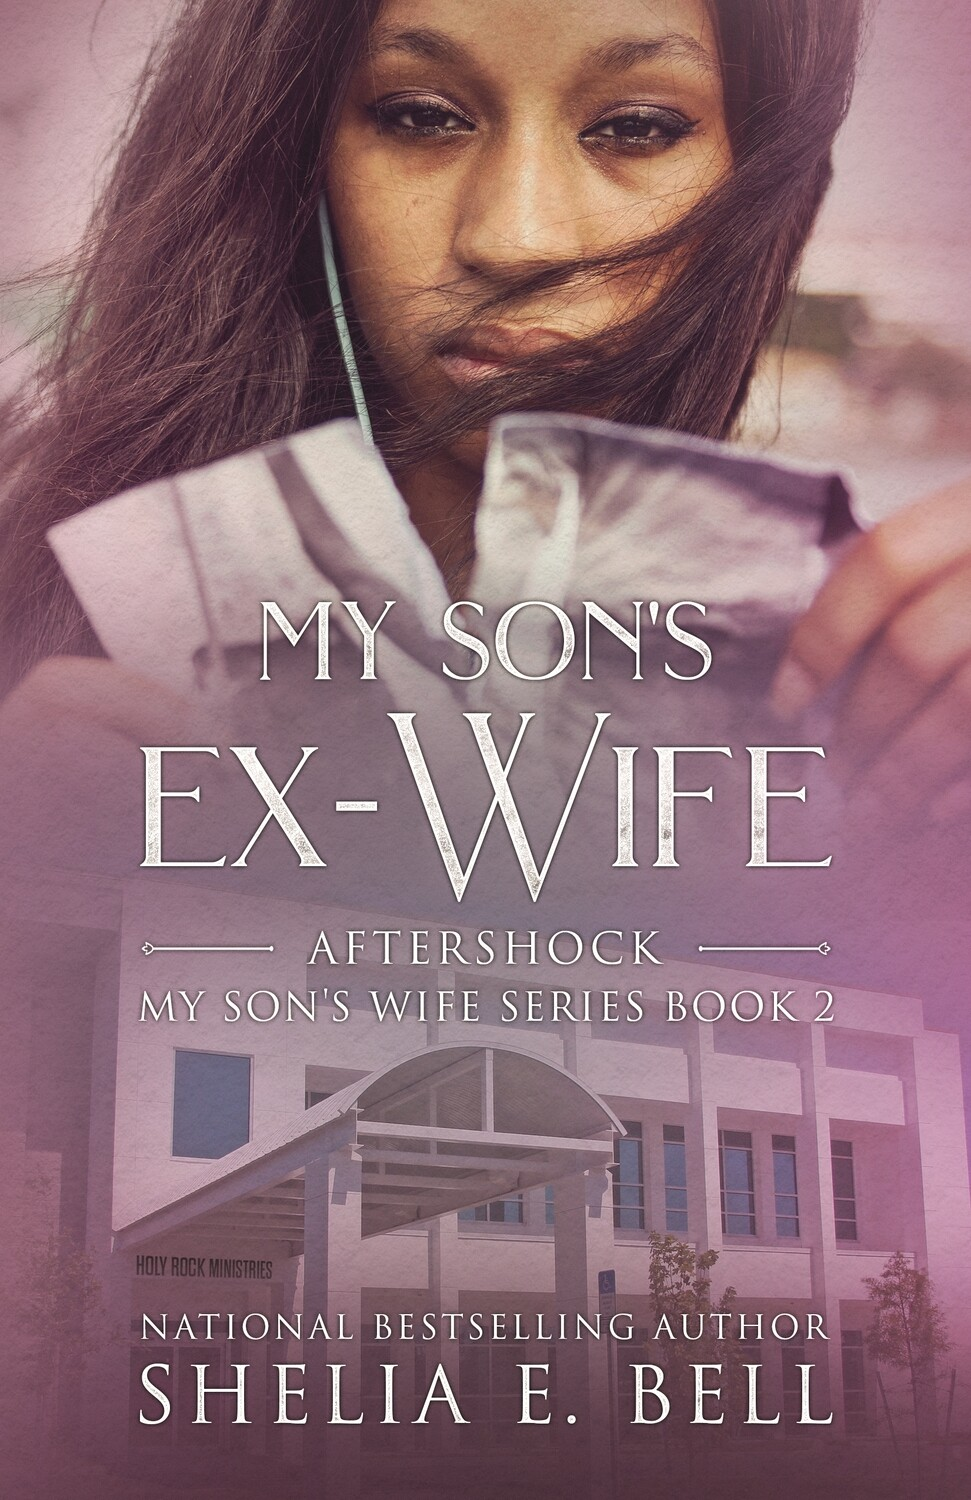 MY SON'S EX WIFE: AFTERSHOCK (Book 2)